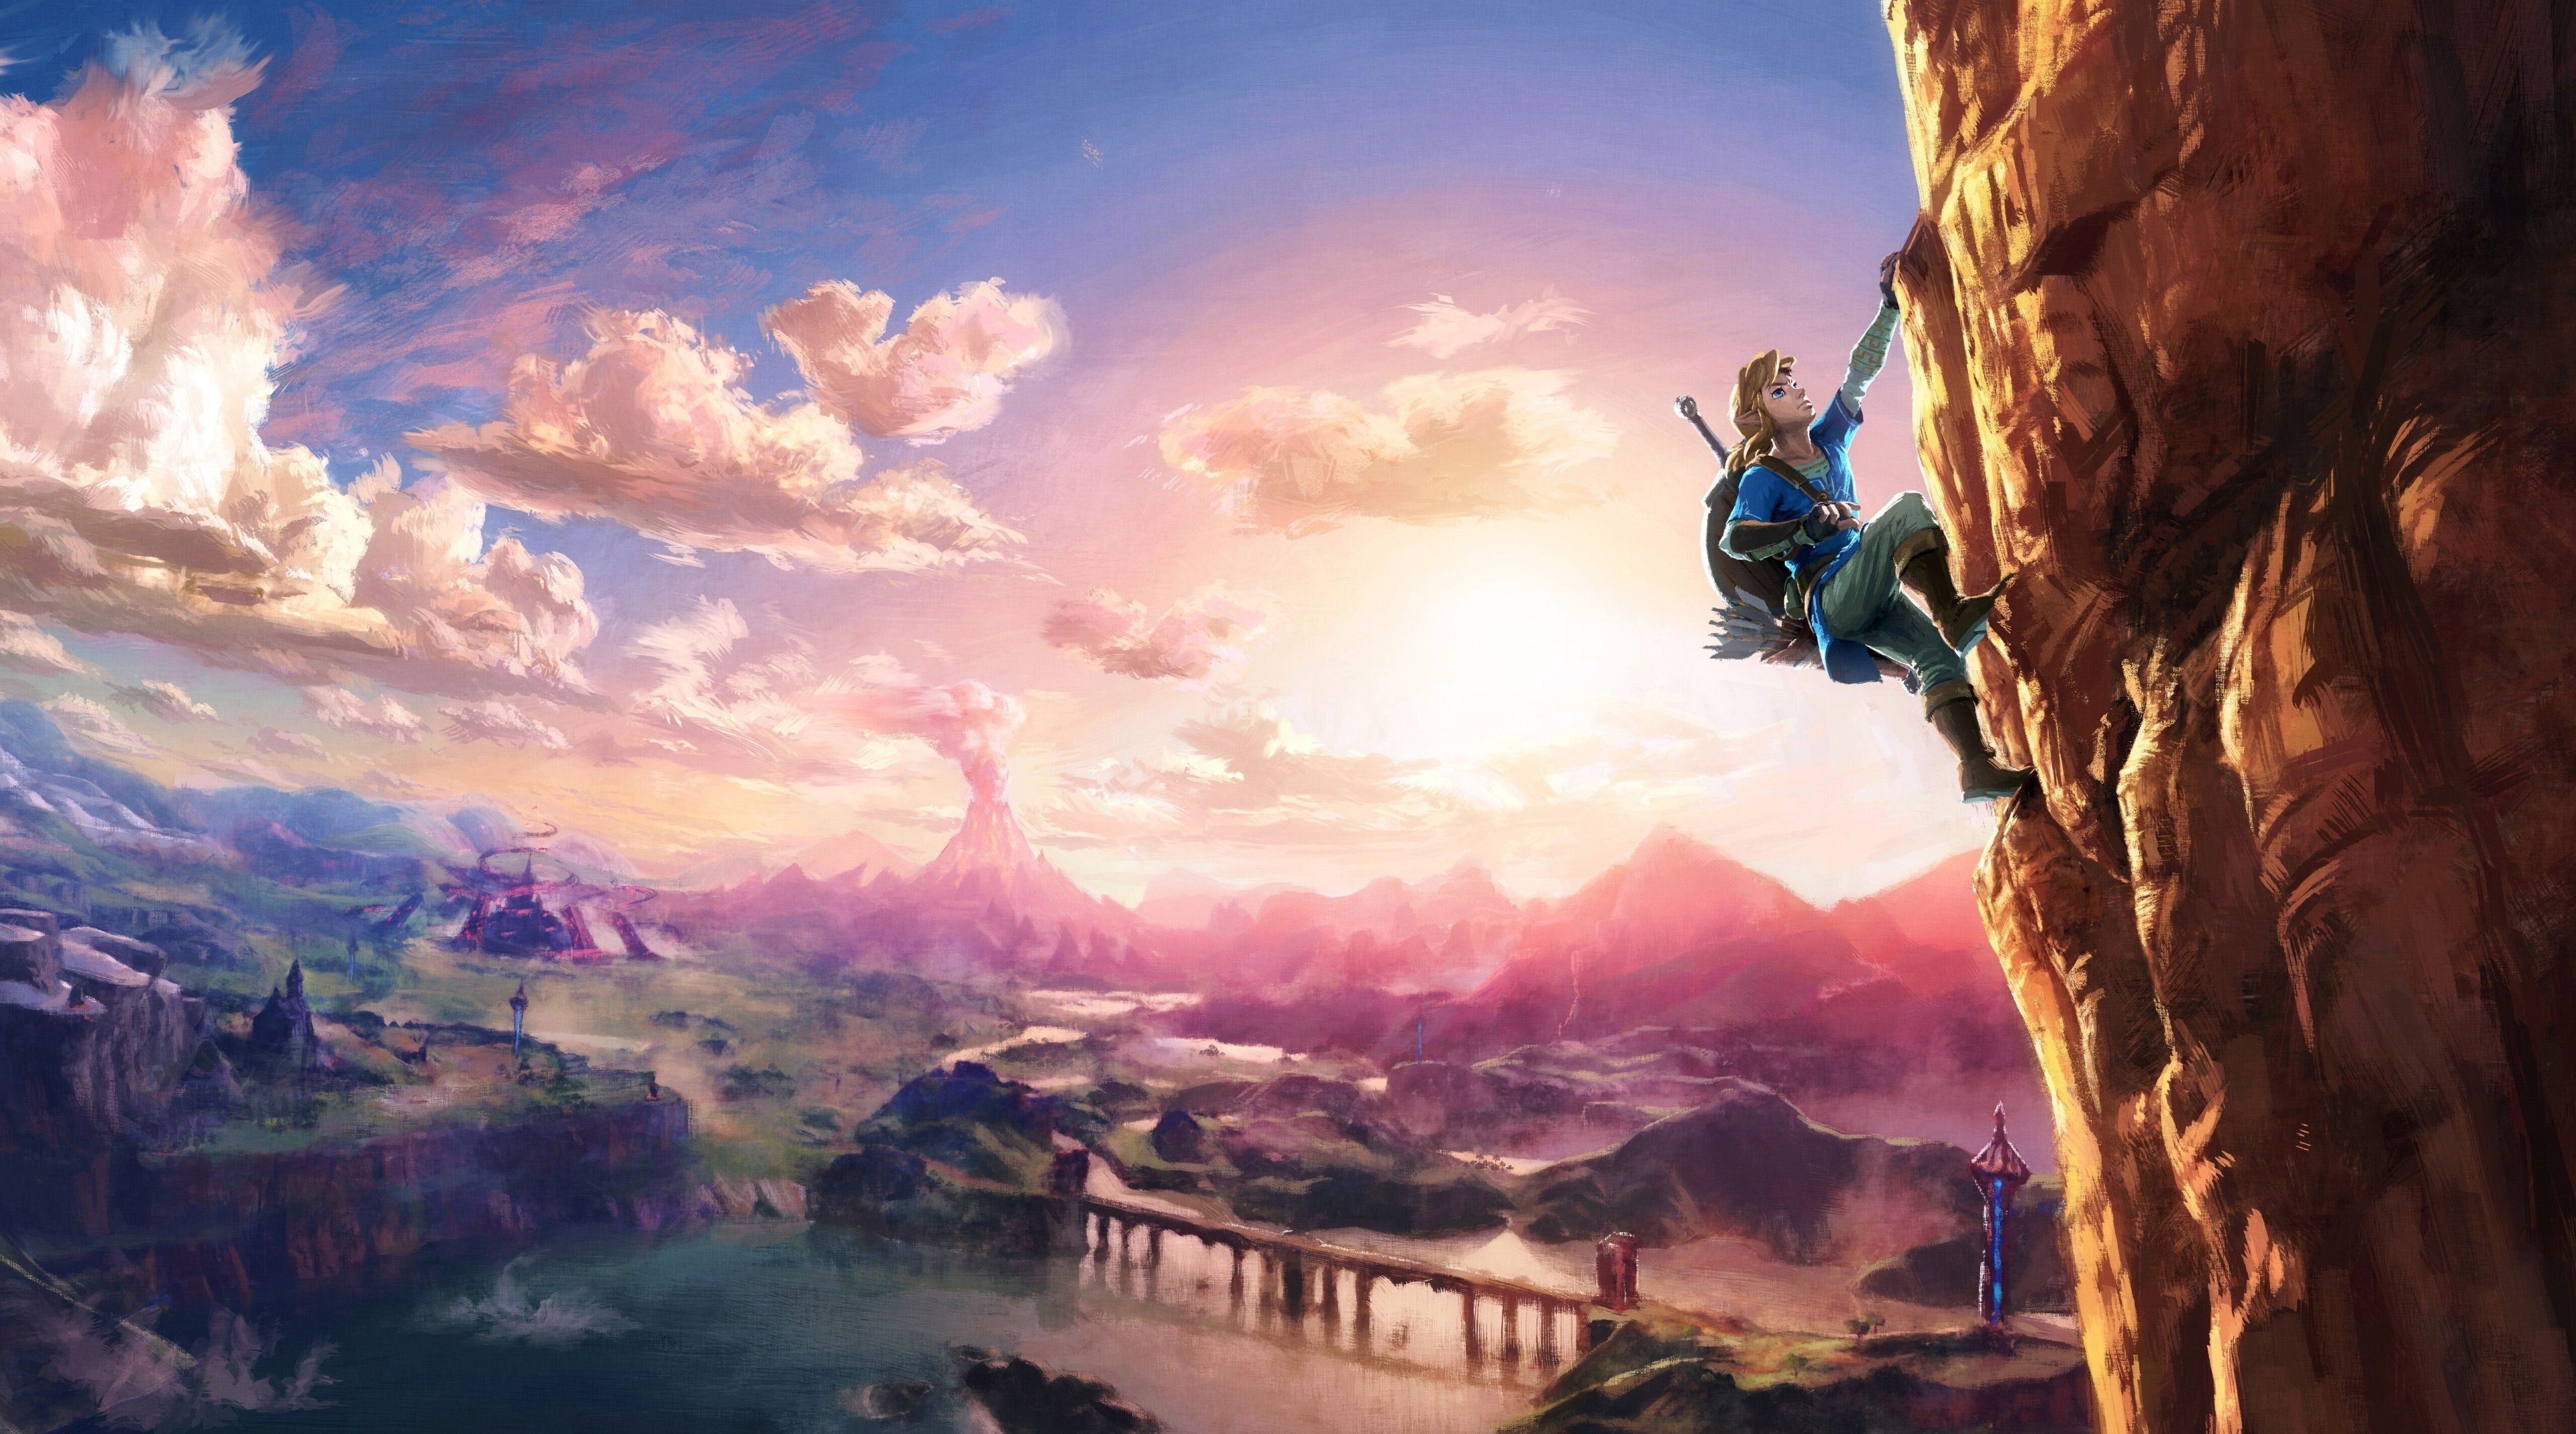 3840x2138 The Legend Of Zelda Breath Of The Wild 4k Computer Wallpaper Desktop Background Legend Of Zelda Legend Of Zelda Breath Breath Of The Wild